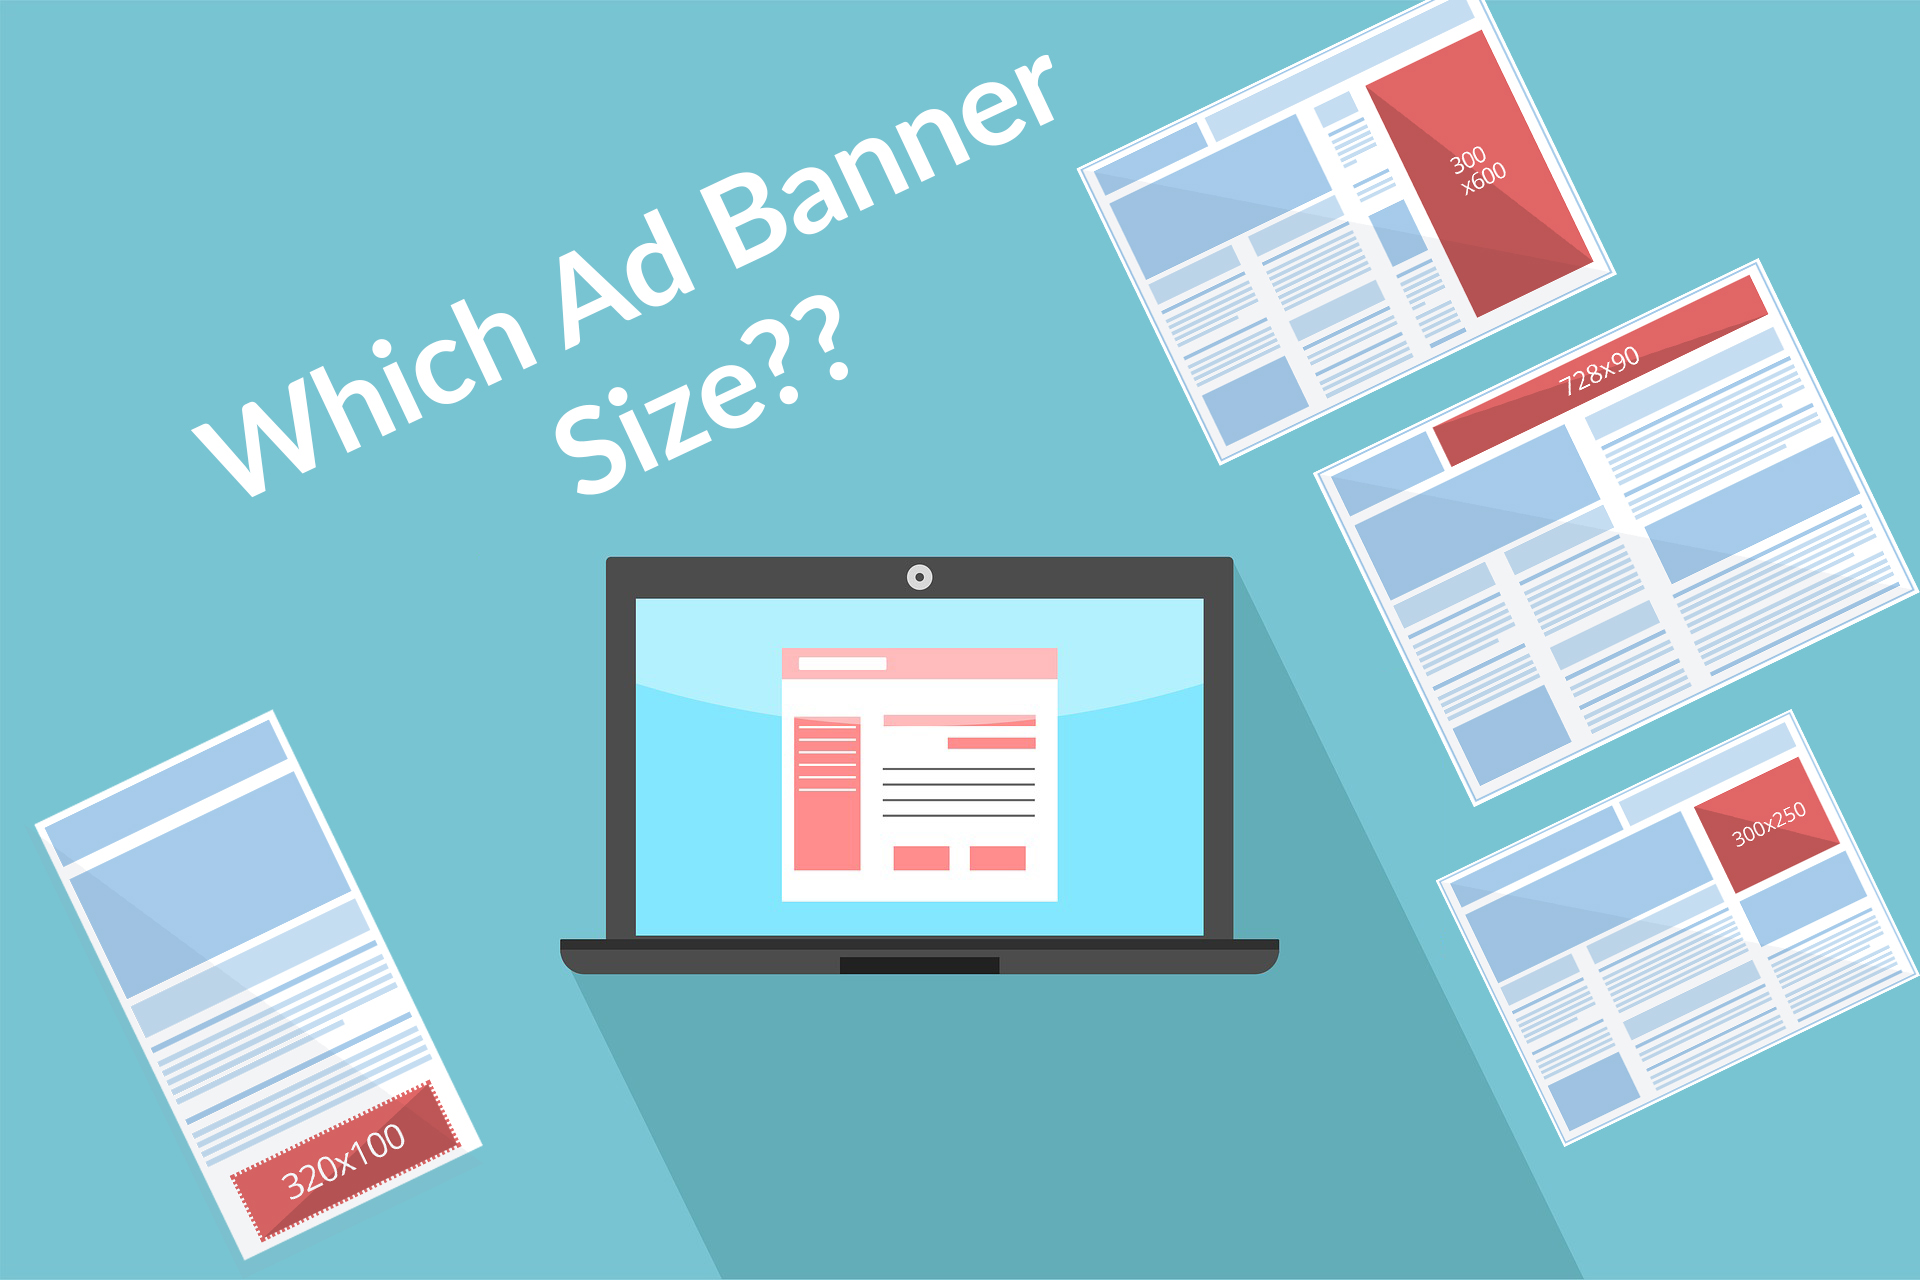 The Best Performing Google Ads Display Banner Ad Sizes